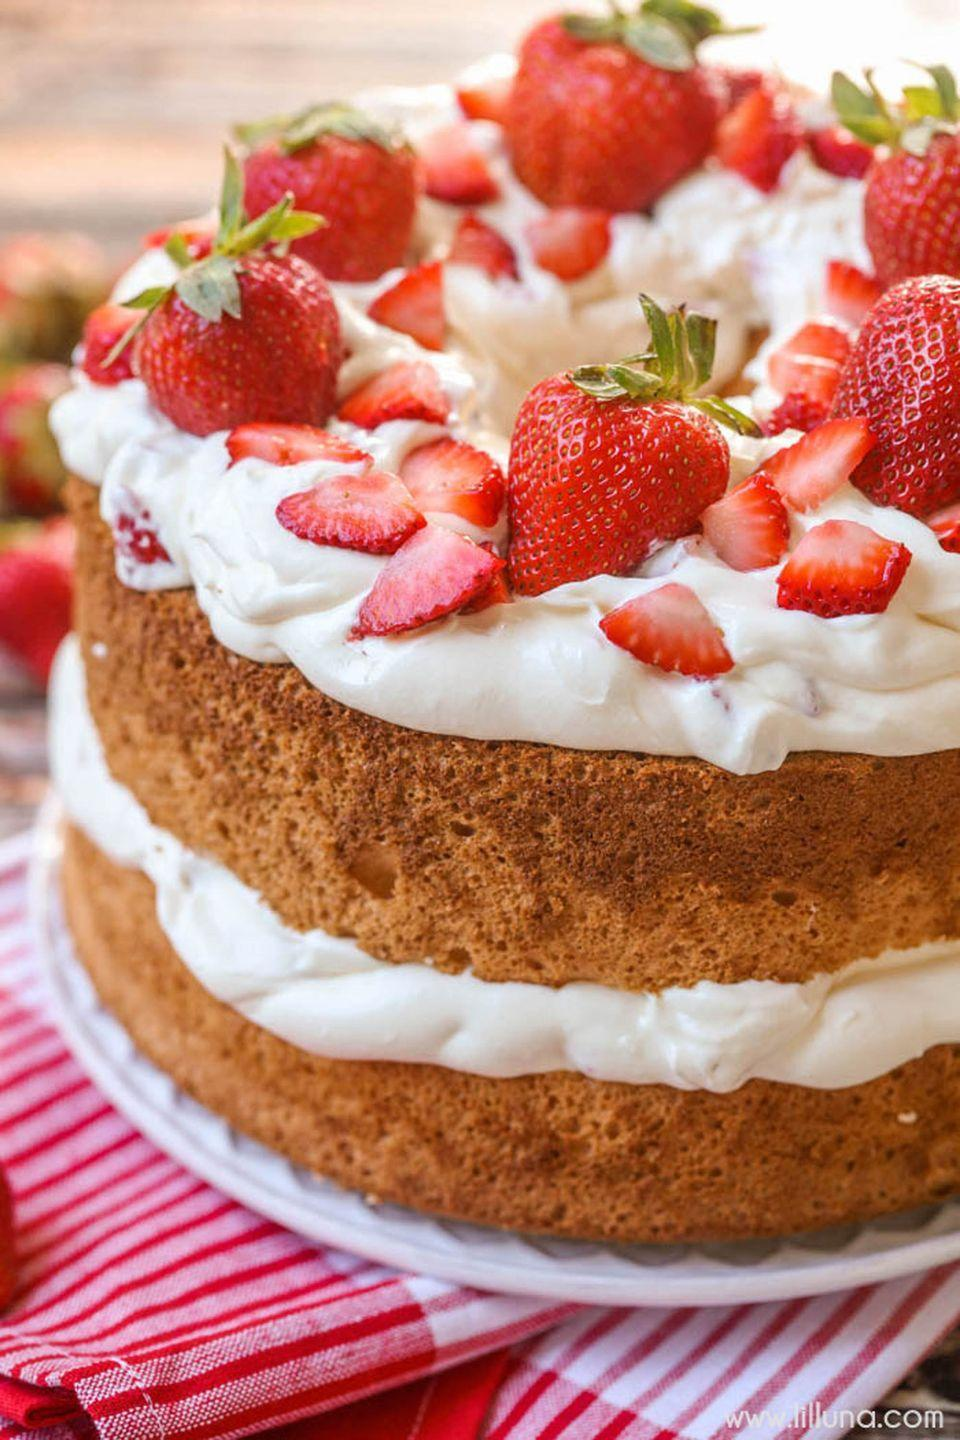 "<p>Mom will love the lightness of the angel food cake—not to mention the creamy strawberry topping.</p><p><strong>Get the recipe at <a href=""https://lilluna.com/strawberries-and-cream-angel-food-cake-2/"" rel=""nofollow noopener"" target=""_blank"" data-ylk=""slk:Lil' Luna"" class=""link rapid-noclick-resp"">Lil' Luna</a>.</strong> </p>"